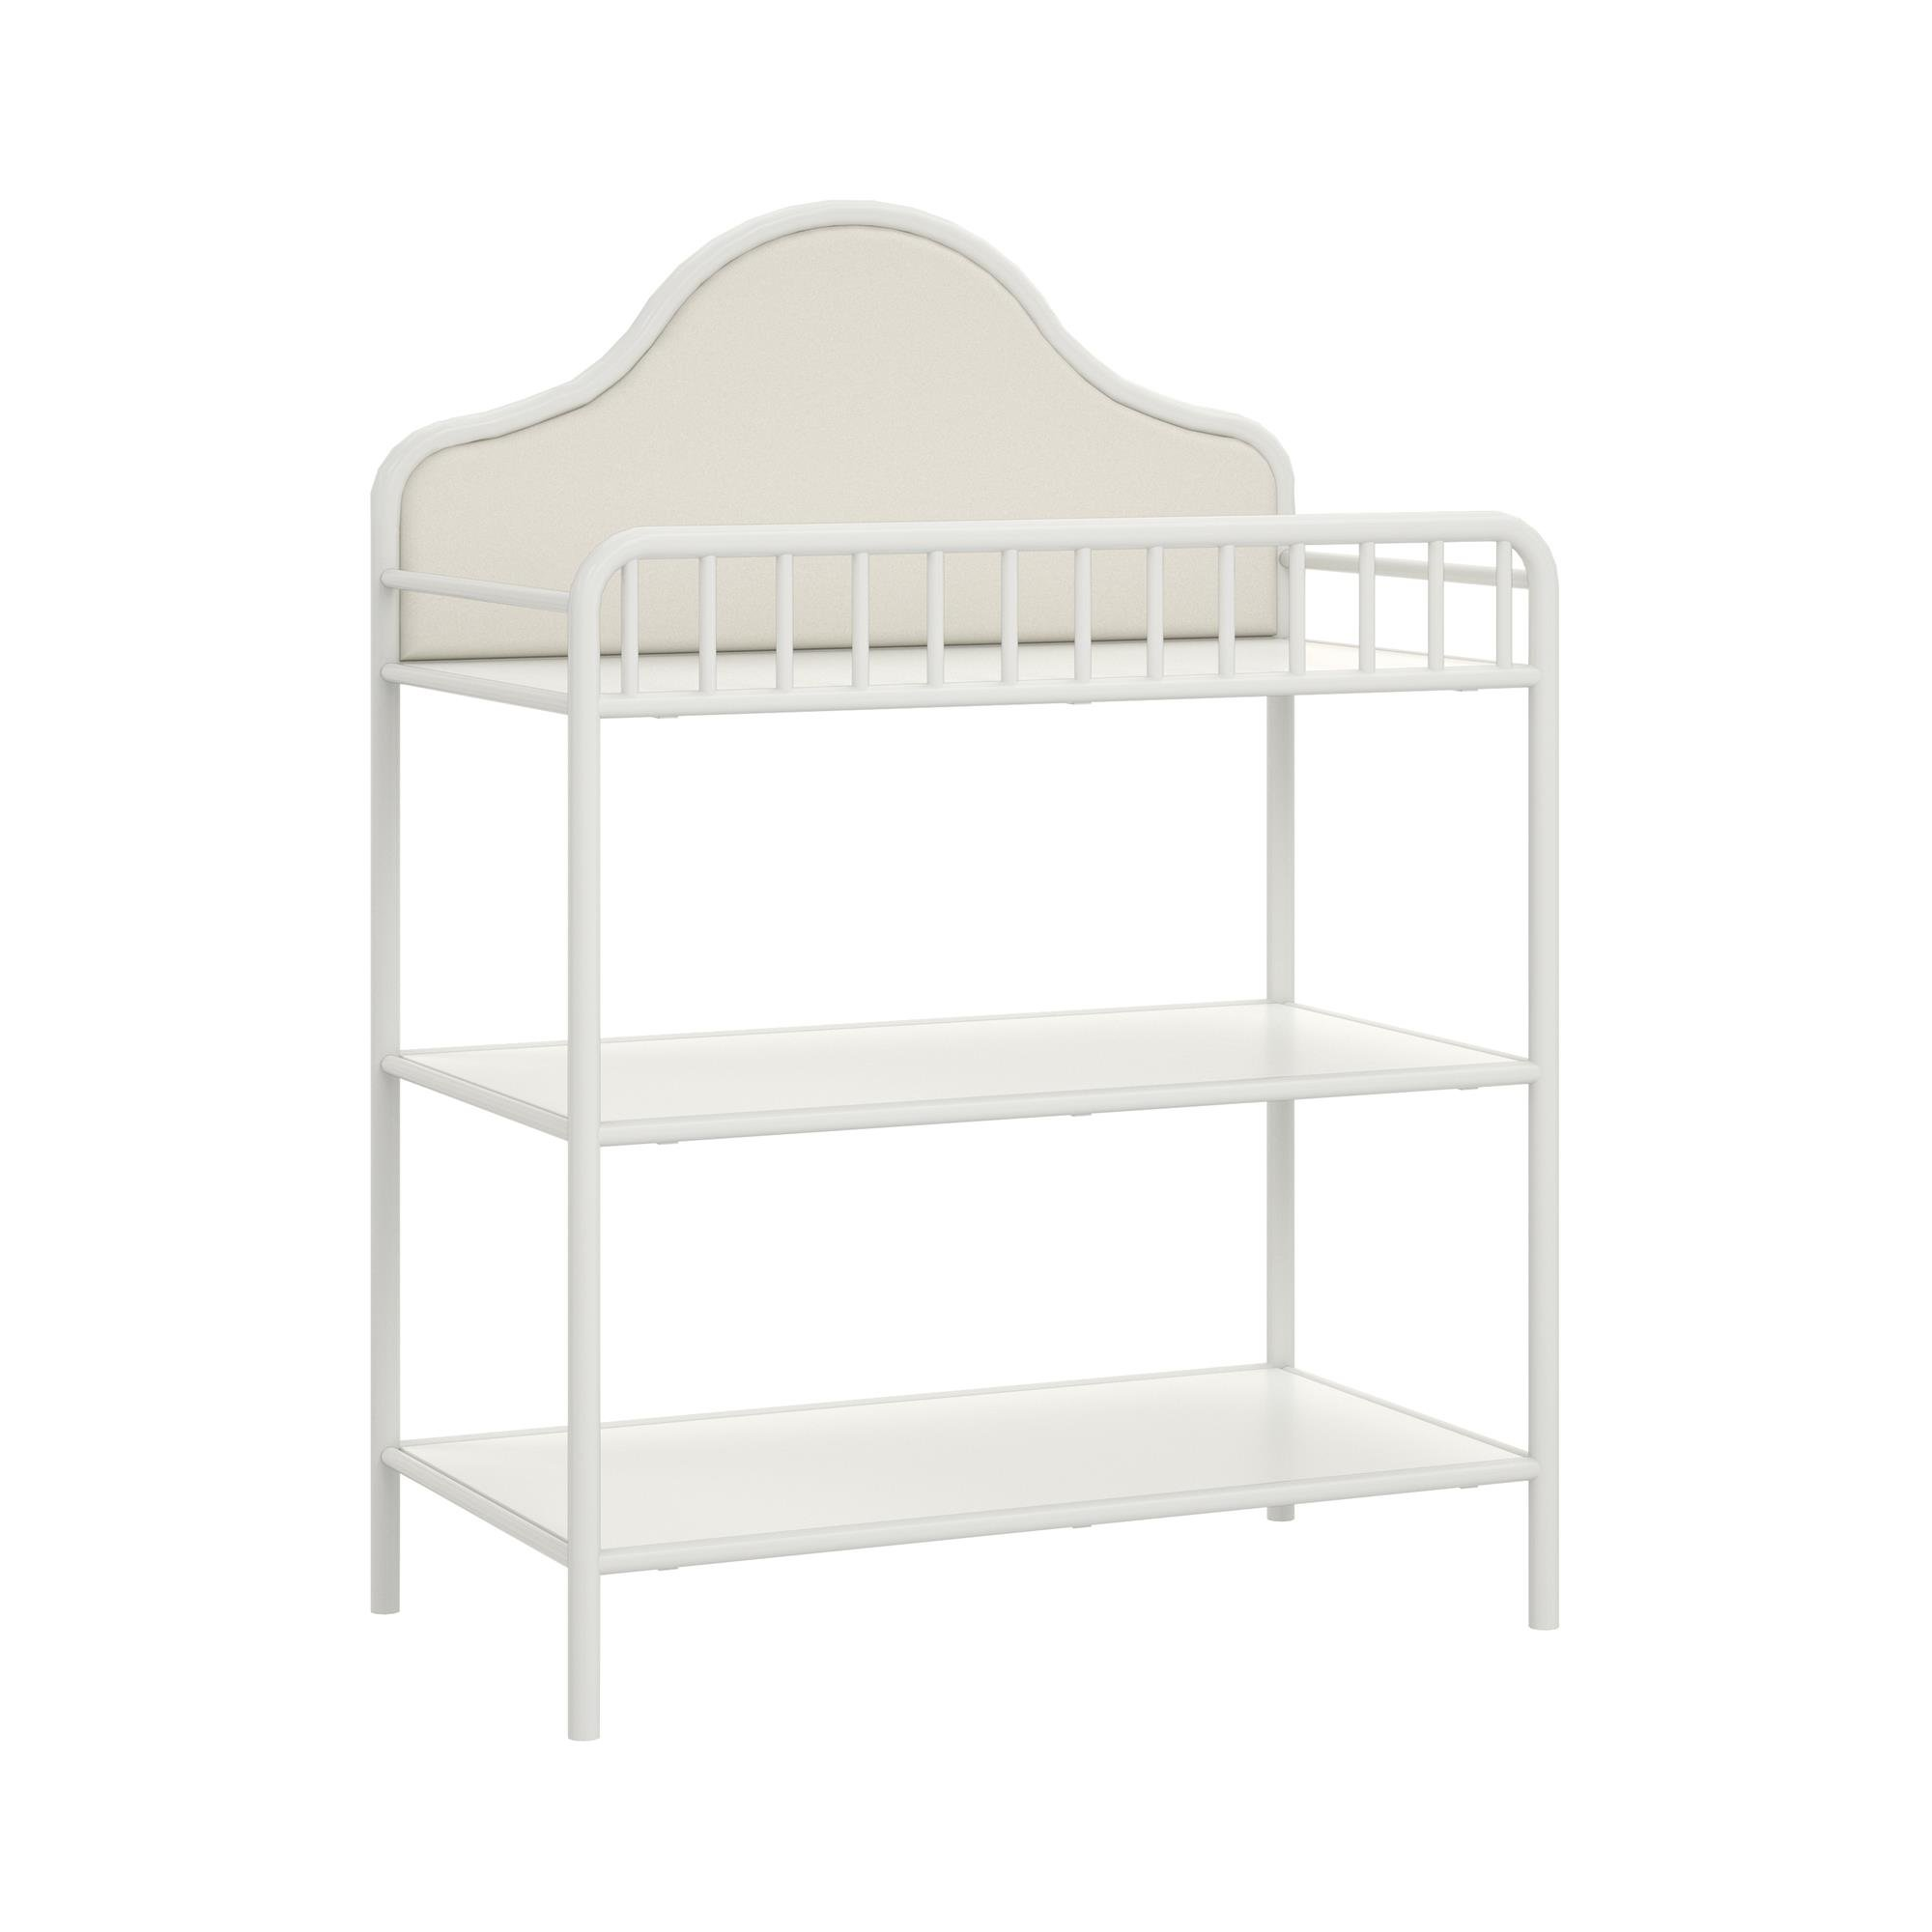 Little Seeds Piper Metal Changing Table, Cream